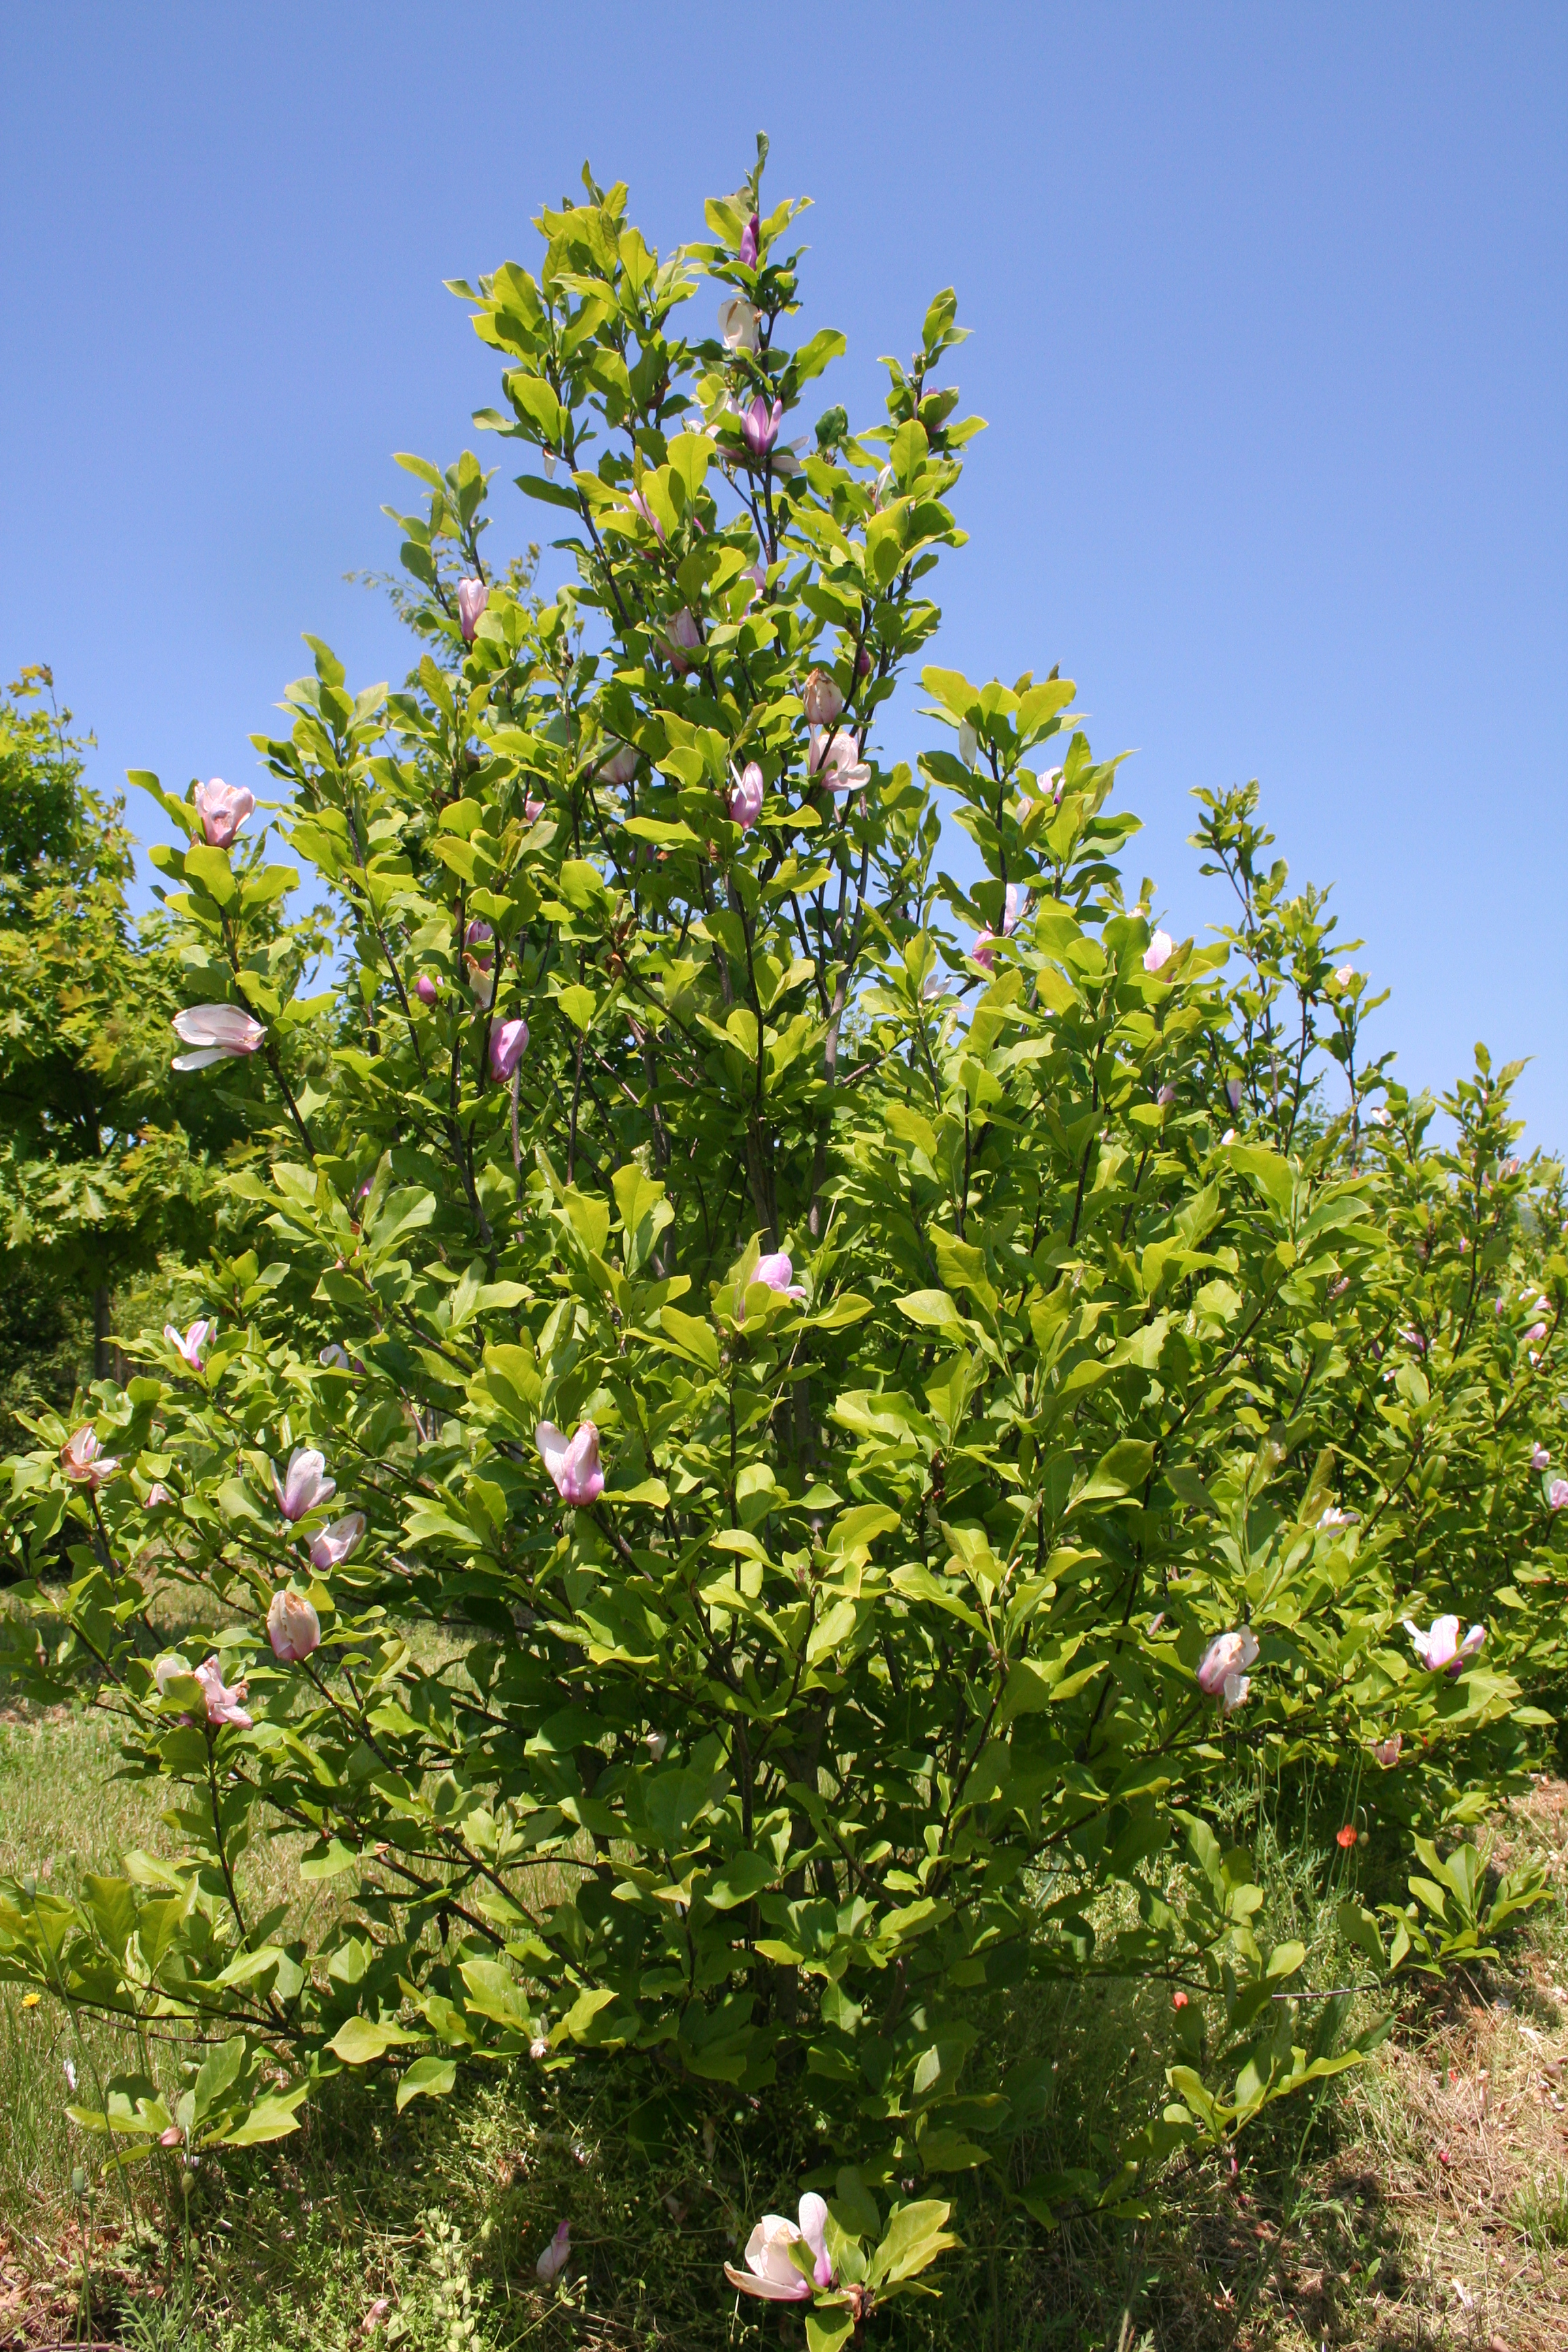 Flowering Tree Jane Magnolia Liliiflora Shade Farm